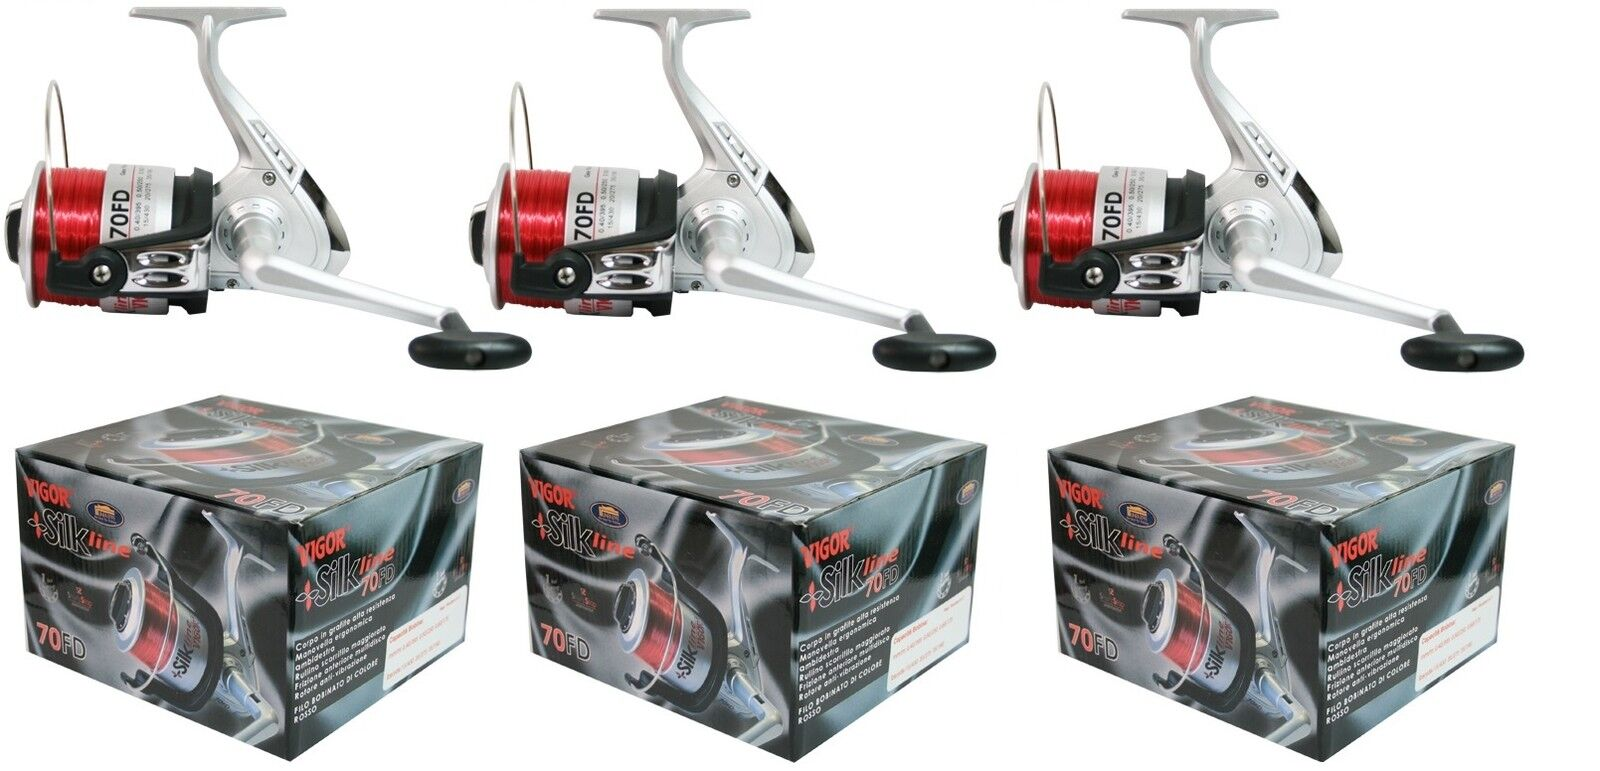 3 x Silk Full Size Beachcasting   Beach   Sea Fishing Reels With Red Line